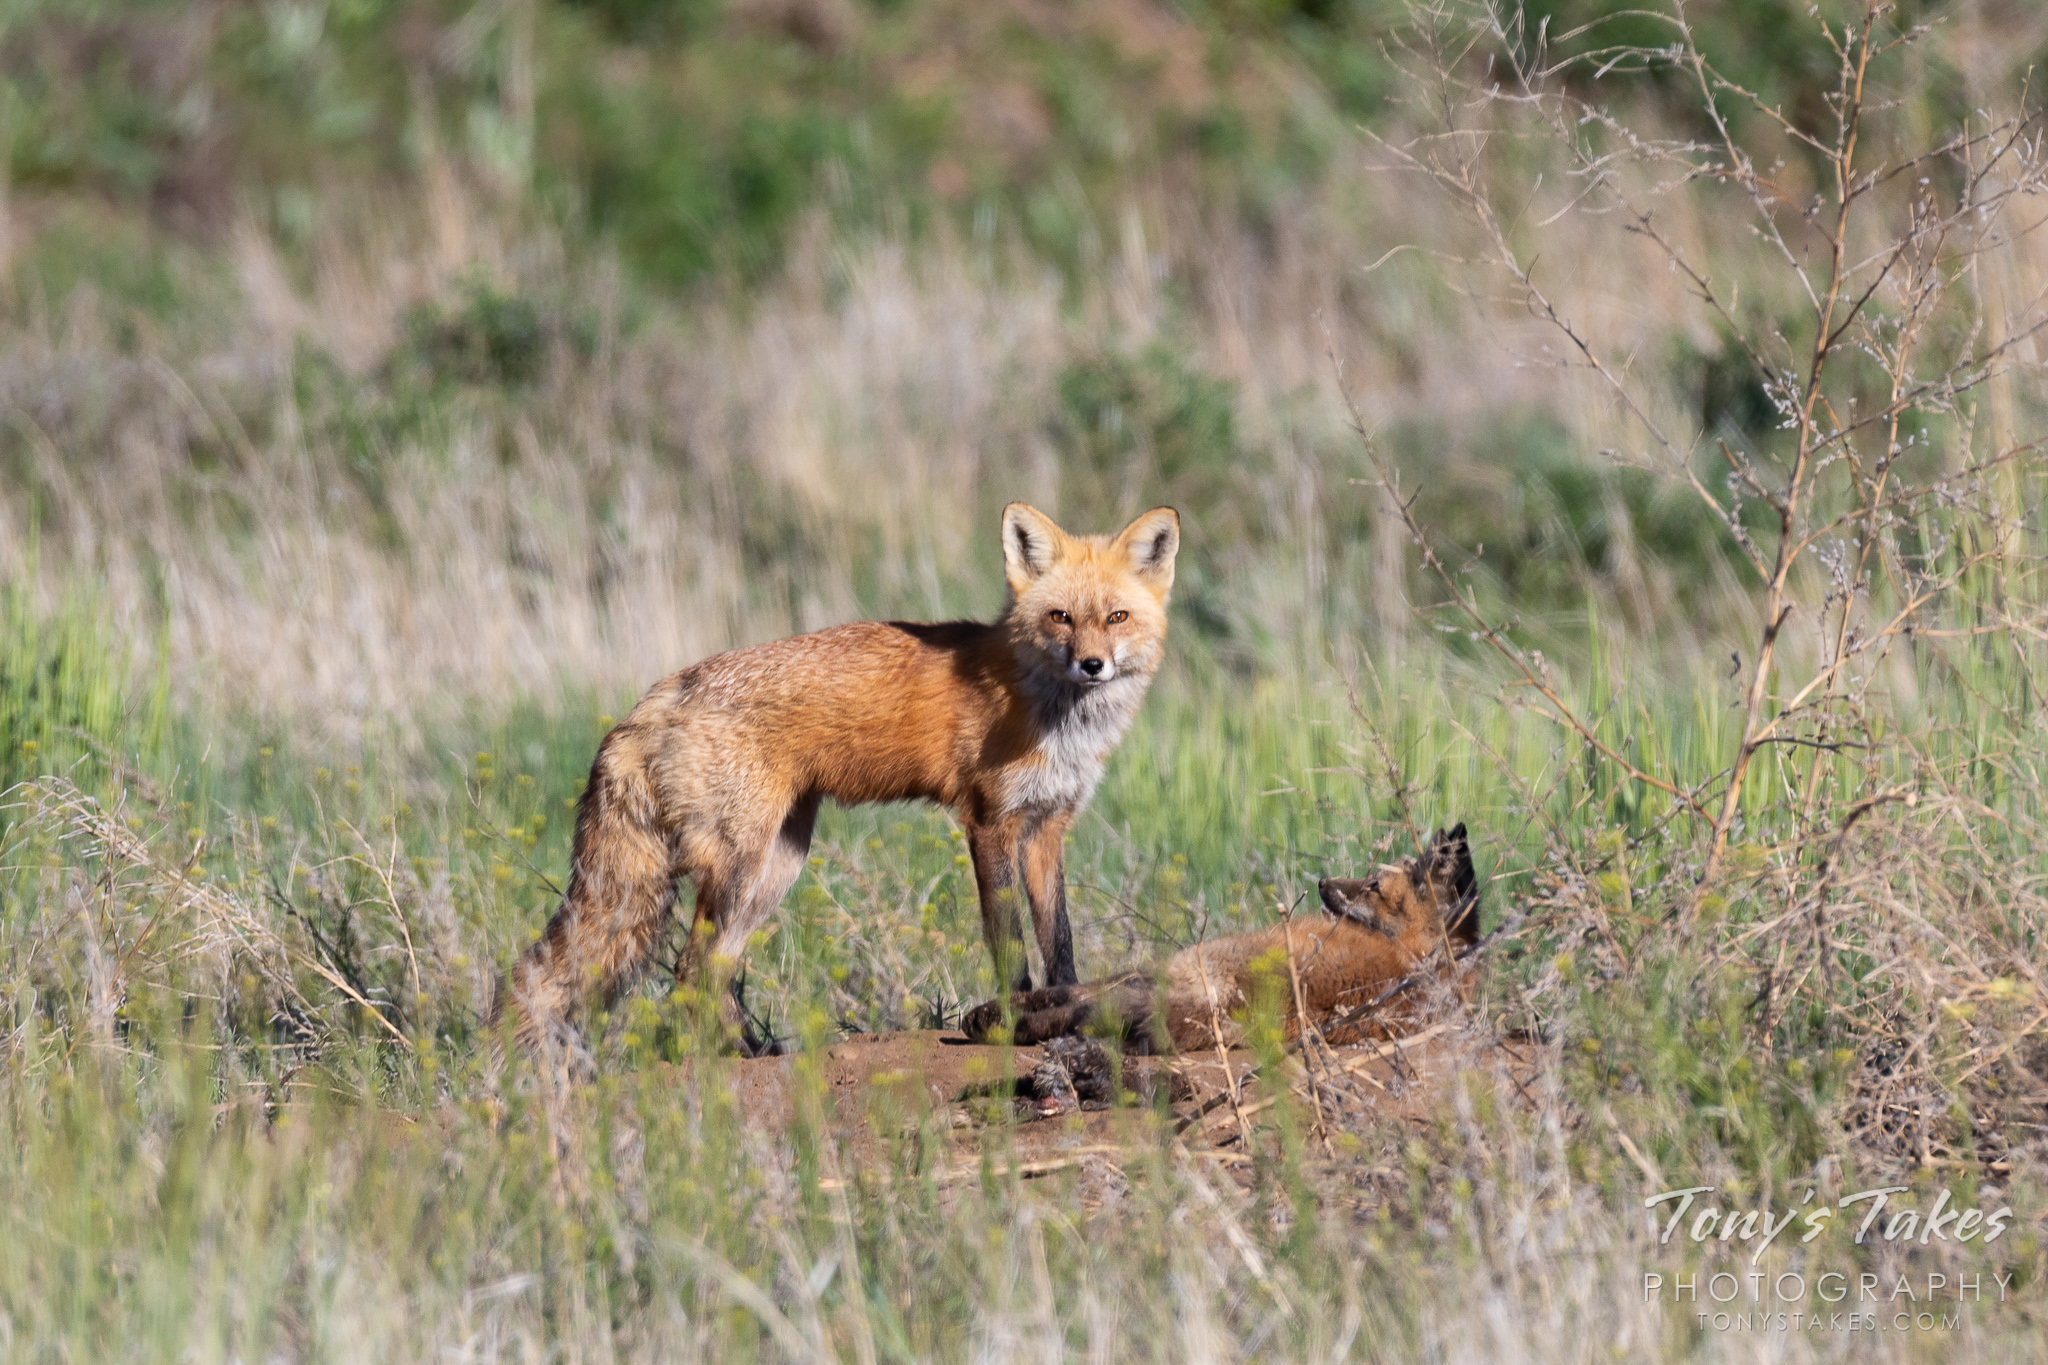 A male red fox keeps watch while its kit tries to get it to play. (© Tony's Takes)